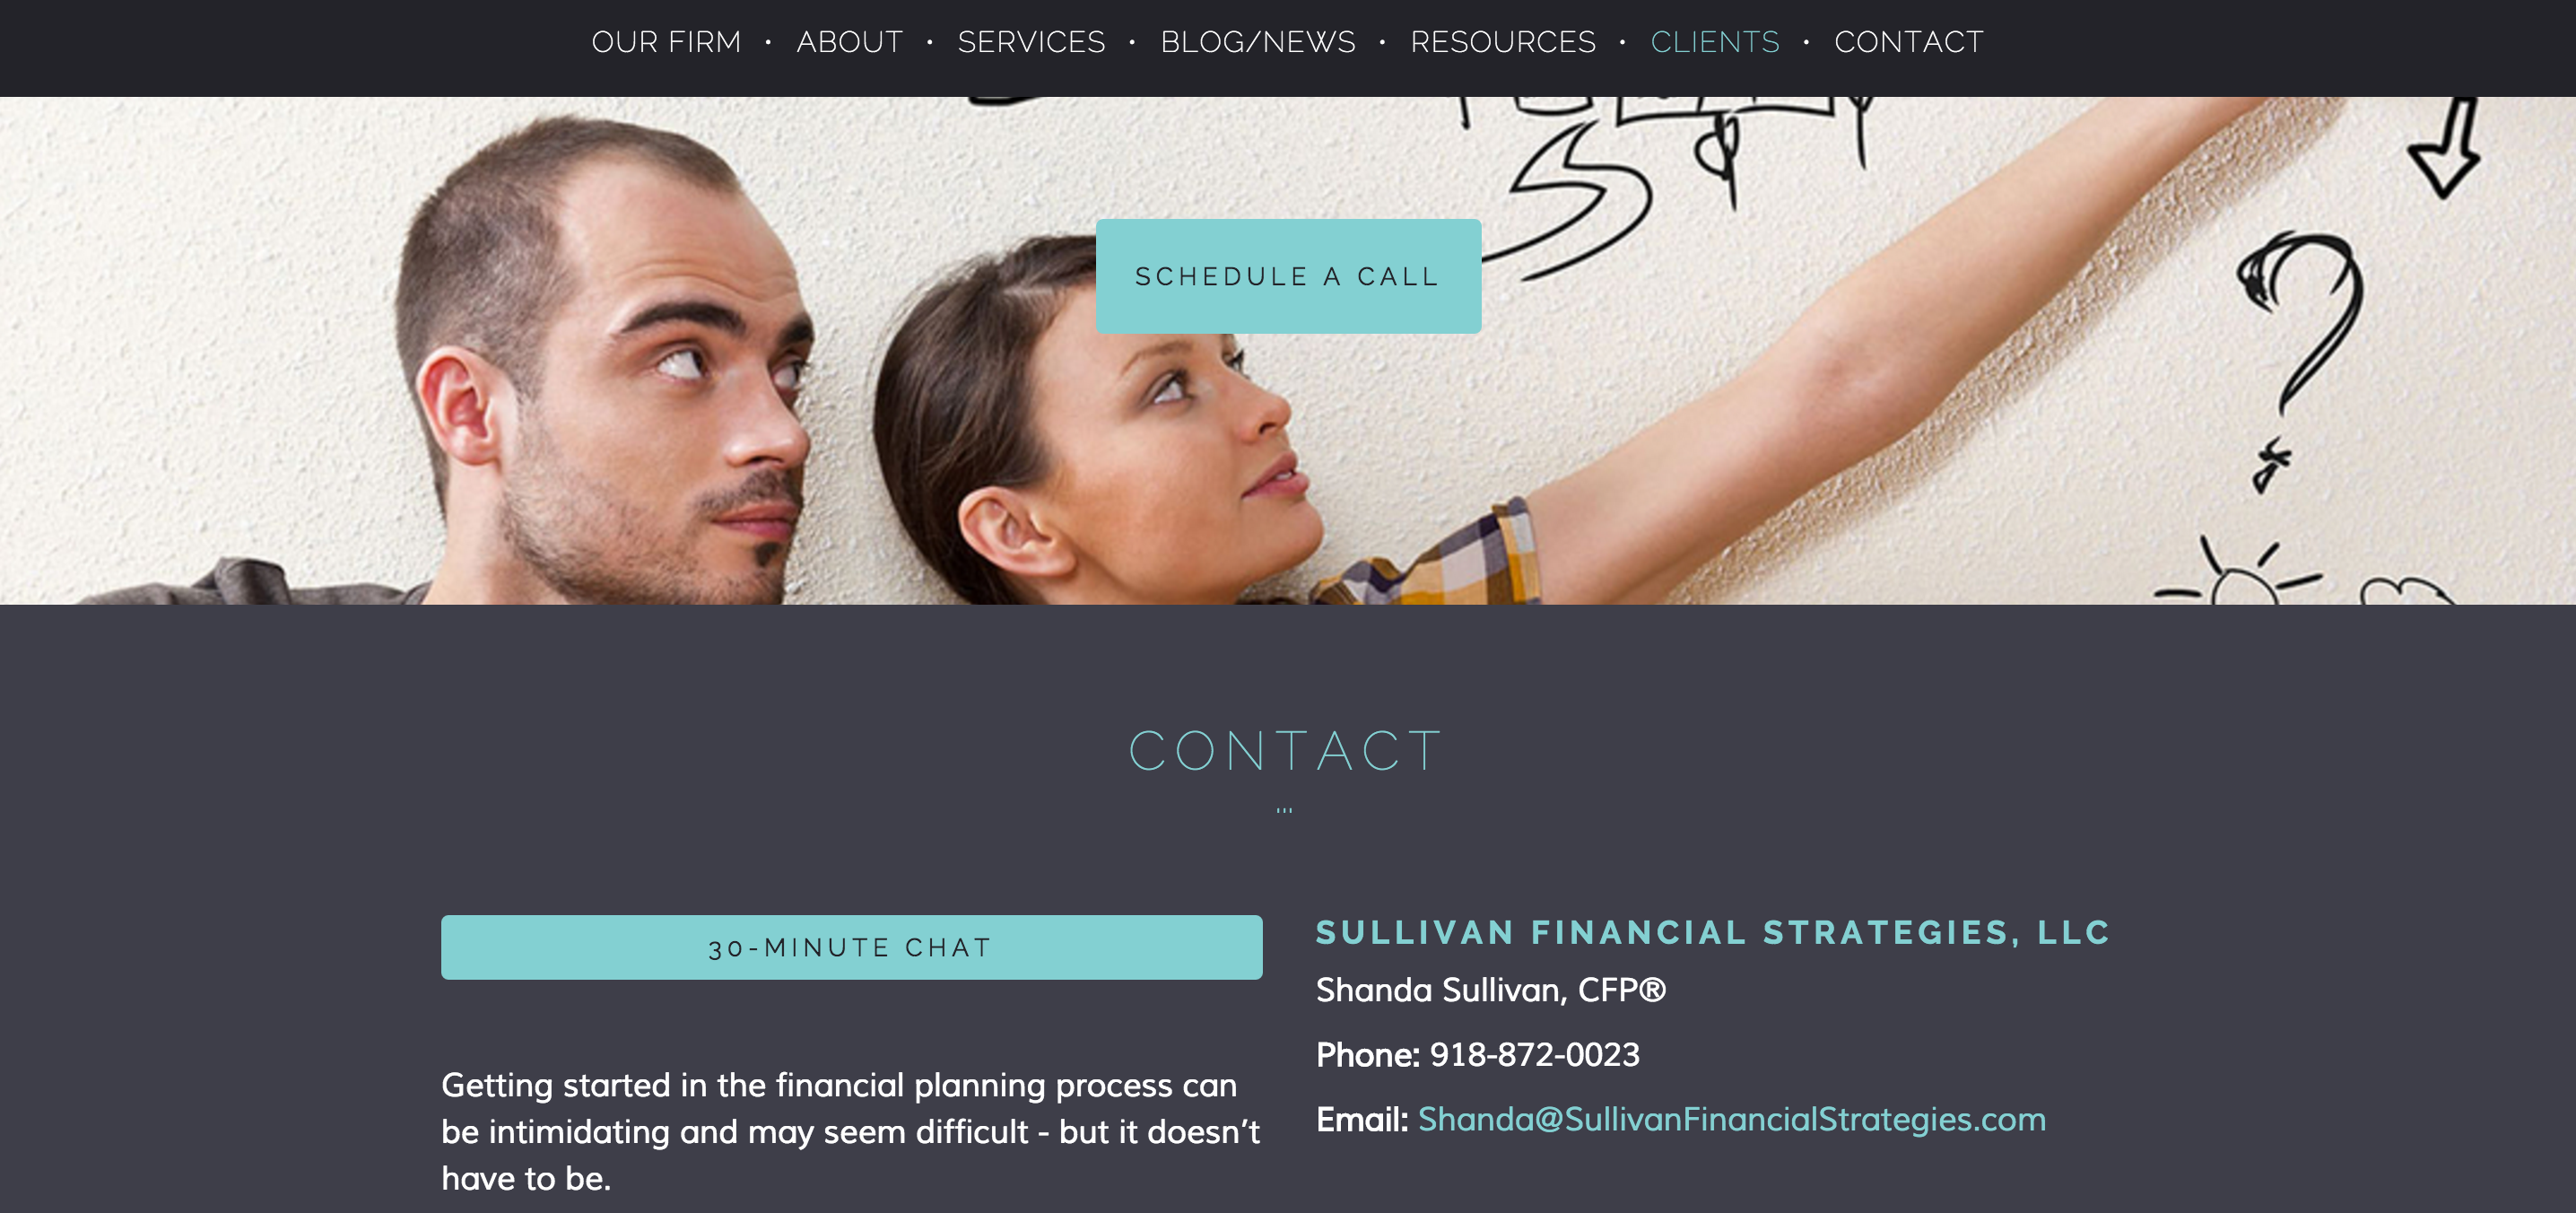 Photo of Gen X/Y on financial planning website